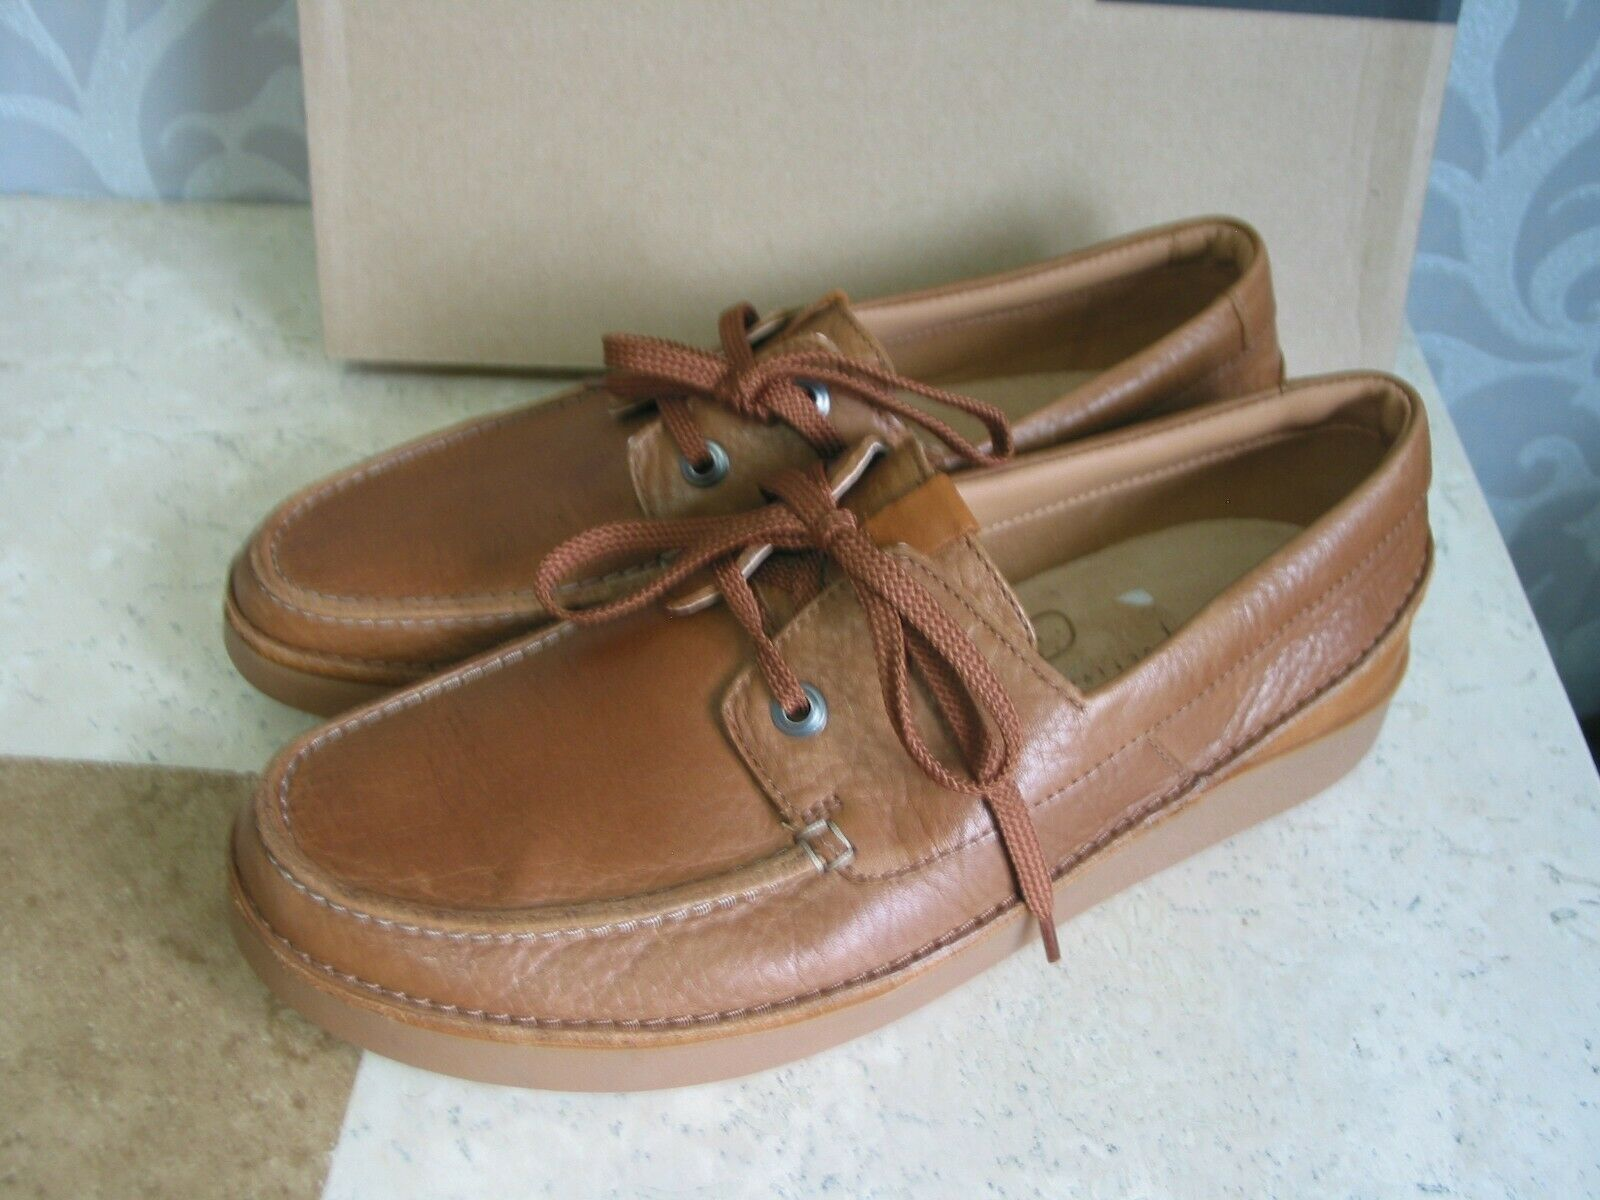 NEW CLARKS ACTIVE AIR OAKLAND SUN TAN LEATHER WALKING SHOES UK SIZE 8.5 & 7